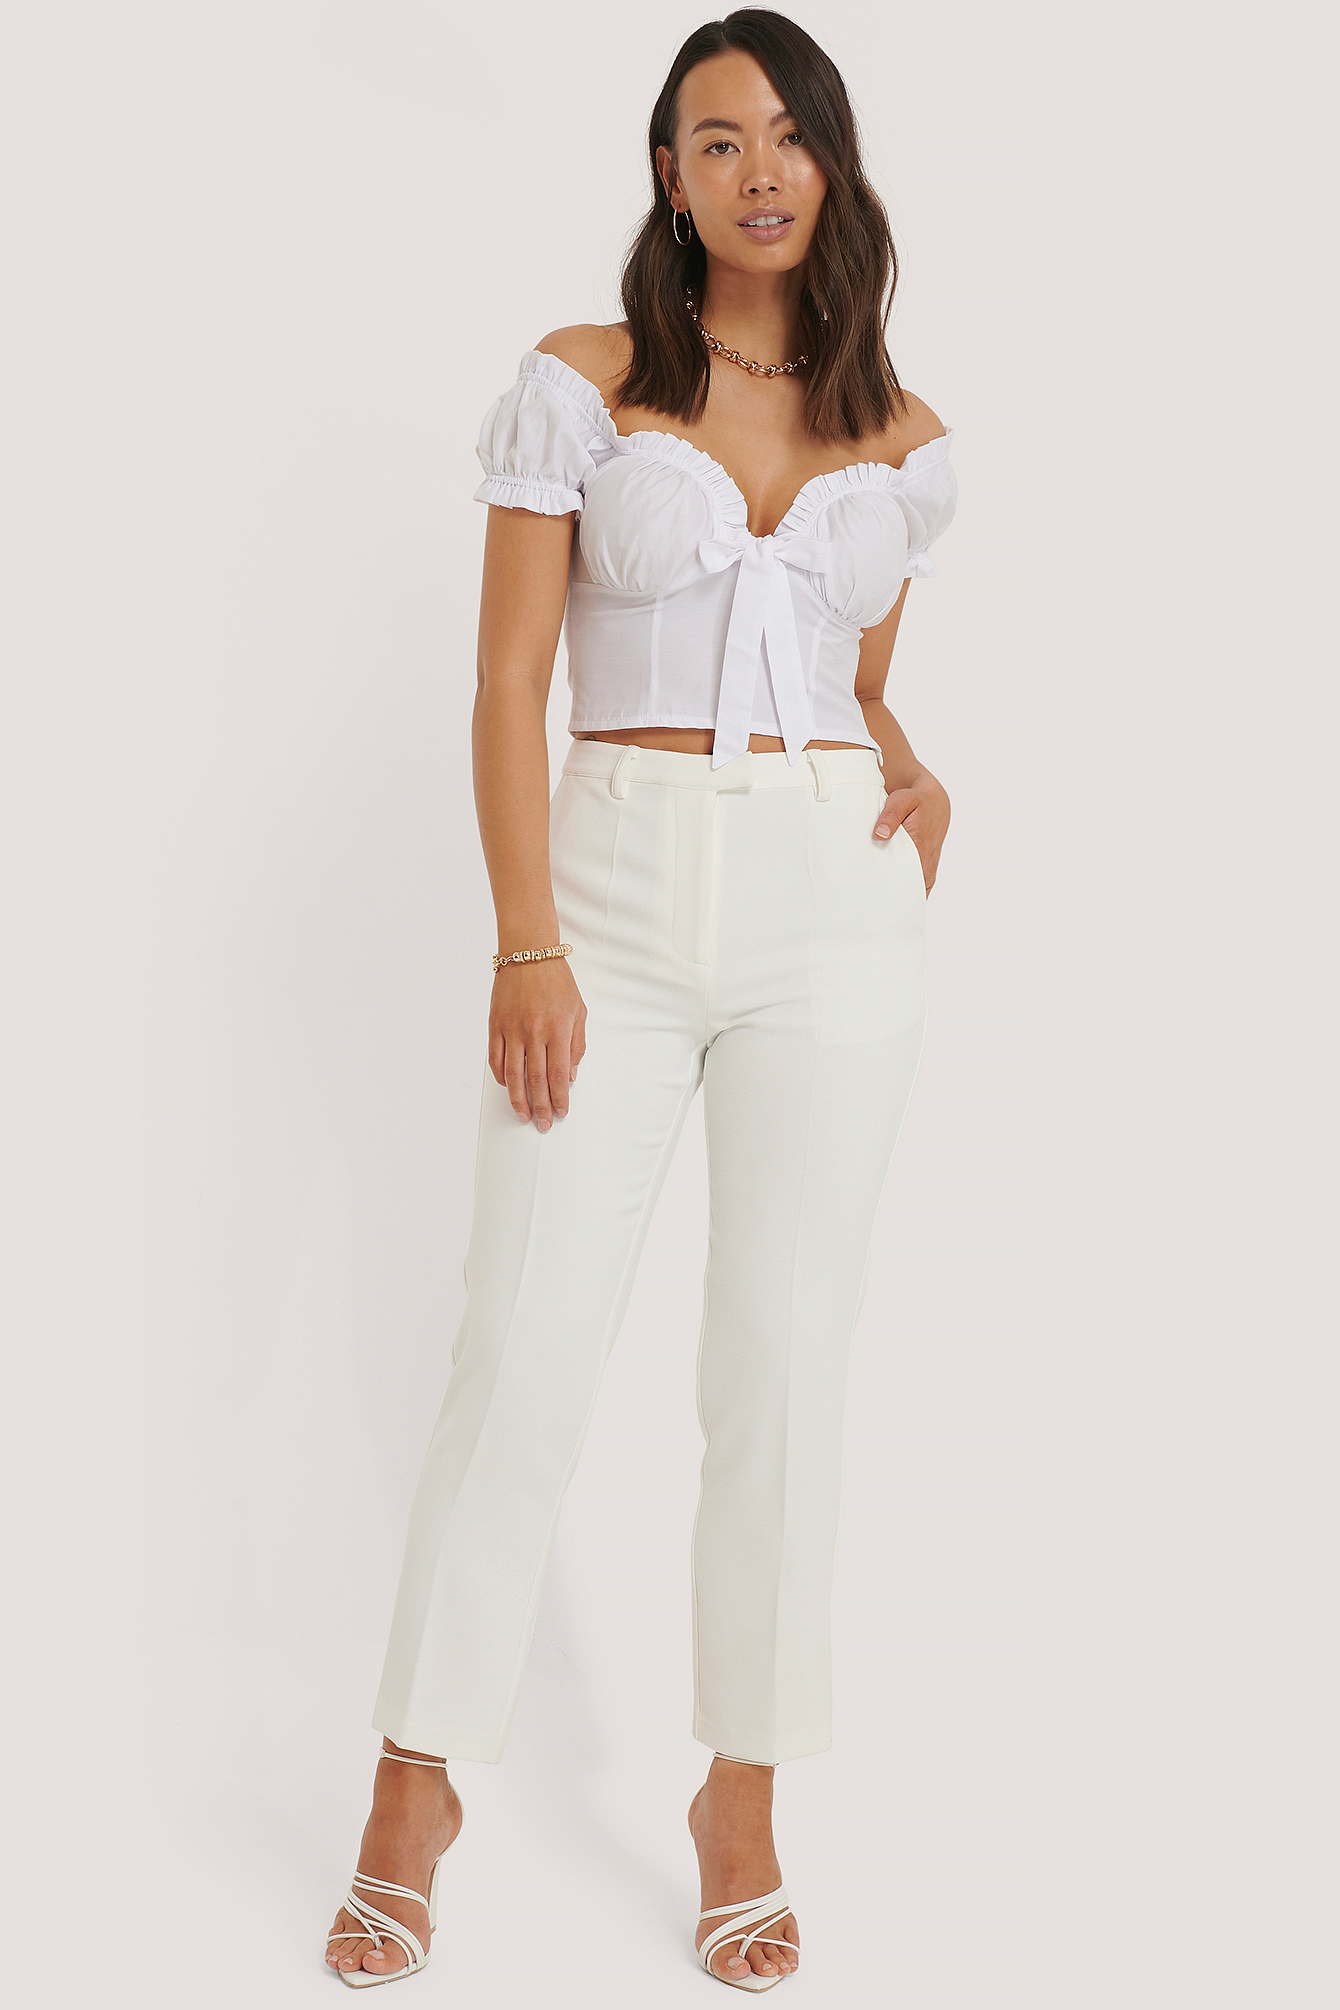 White Pantalon De Costume Court